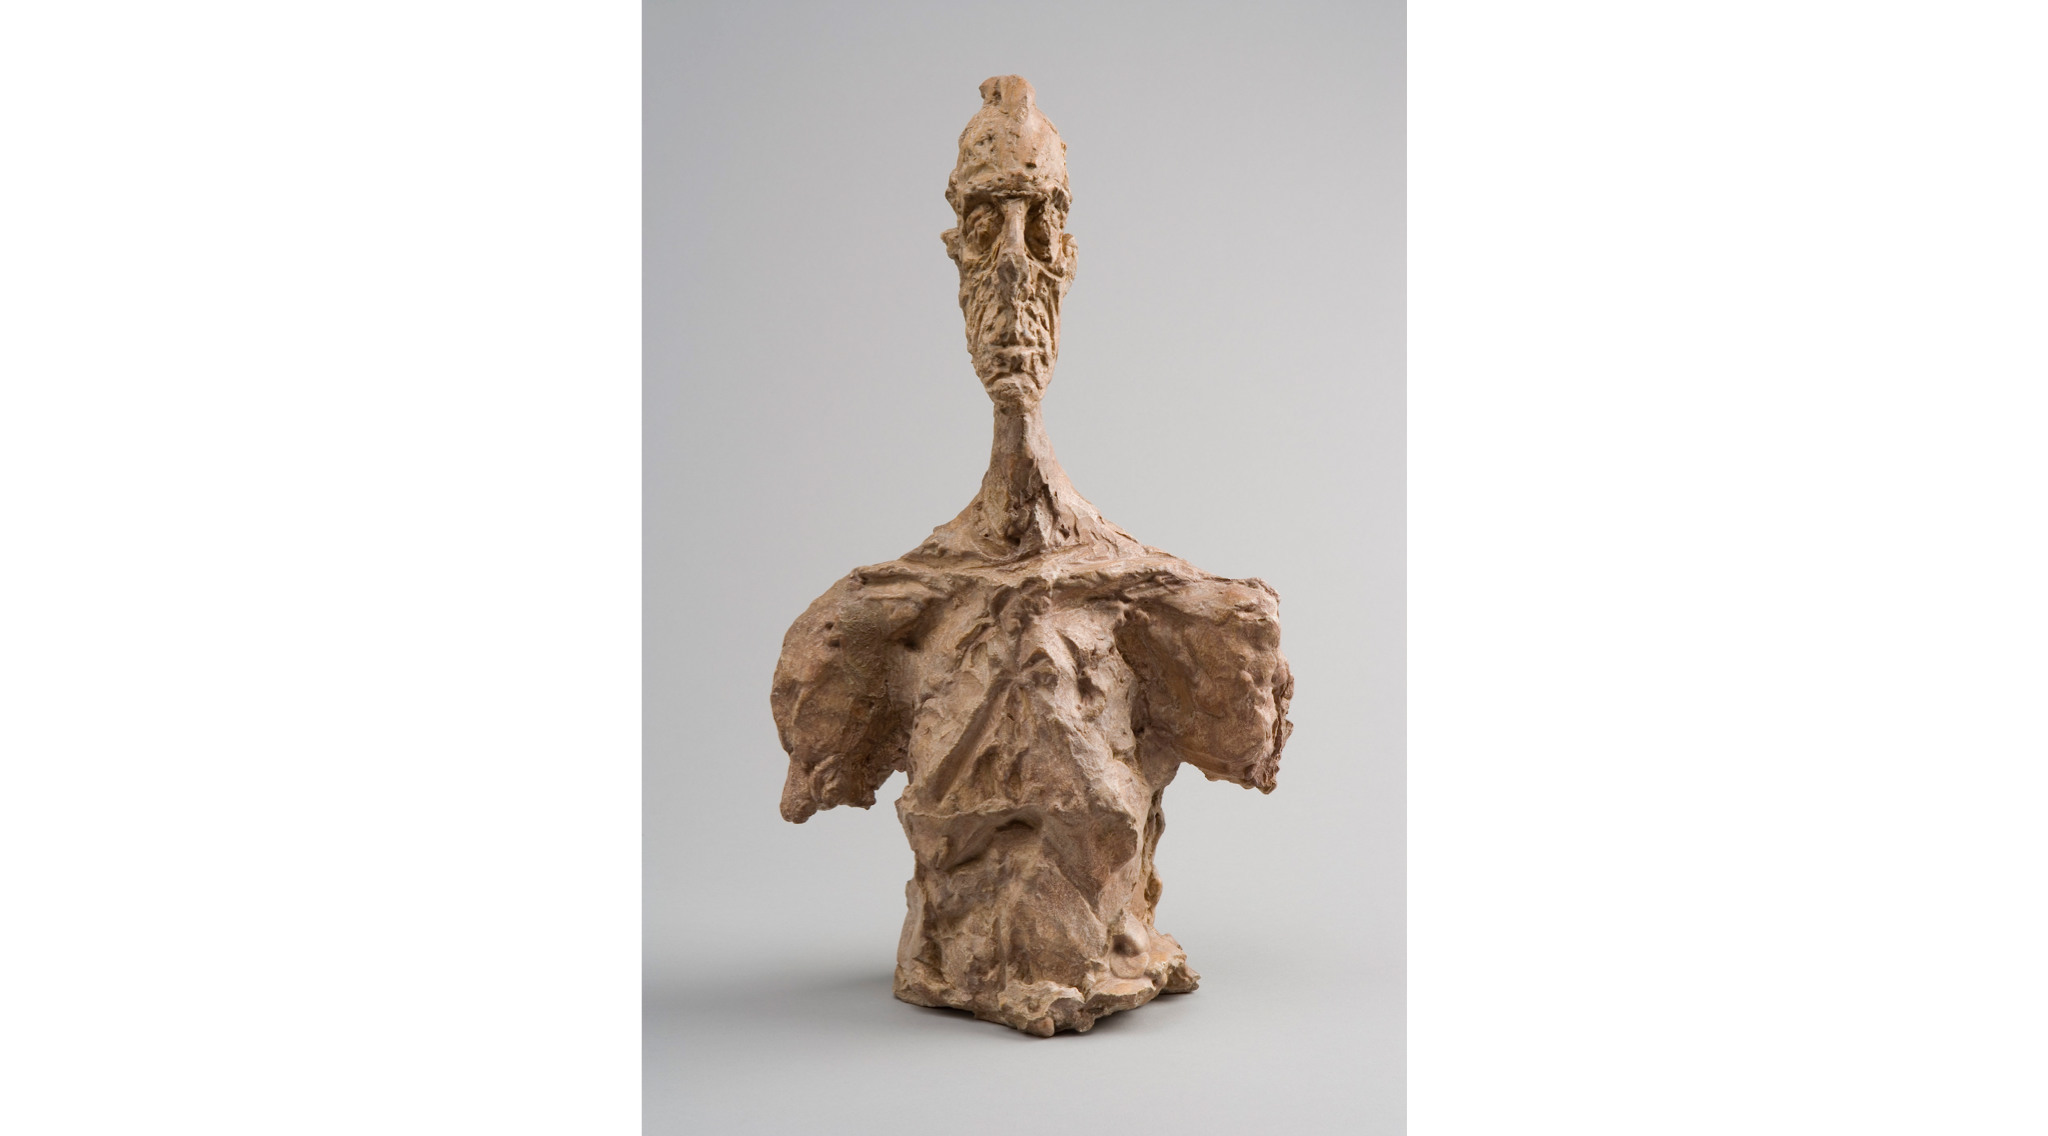 'Bust of Diego', 1956, by Alberto Giacometti